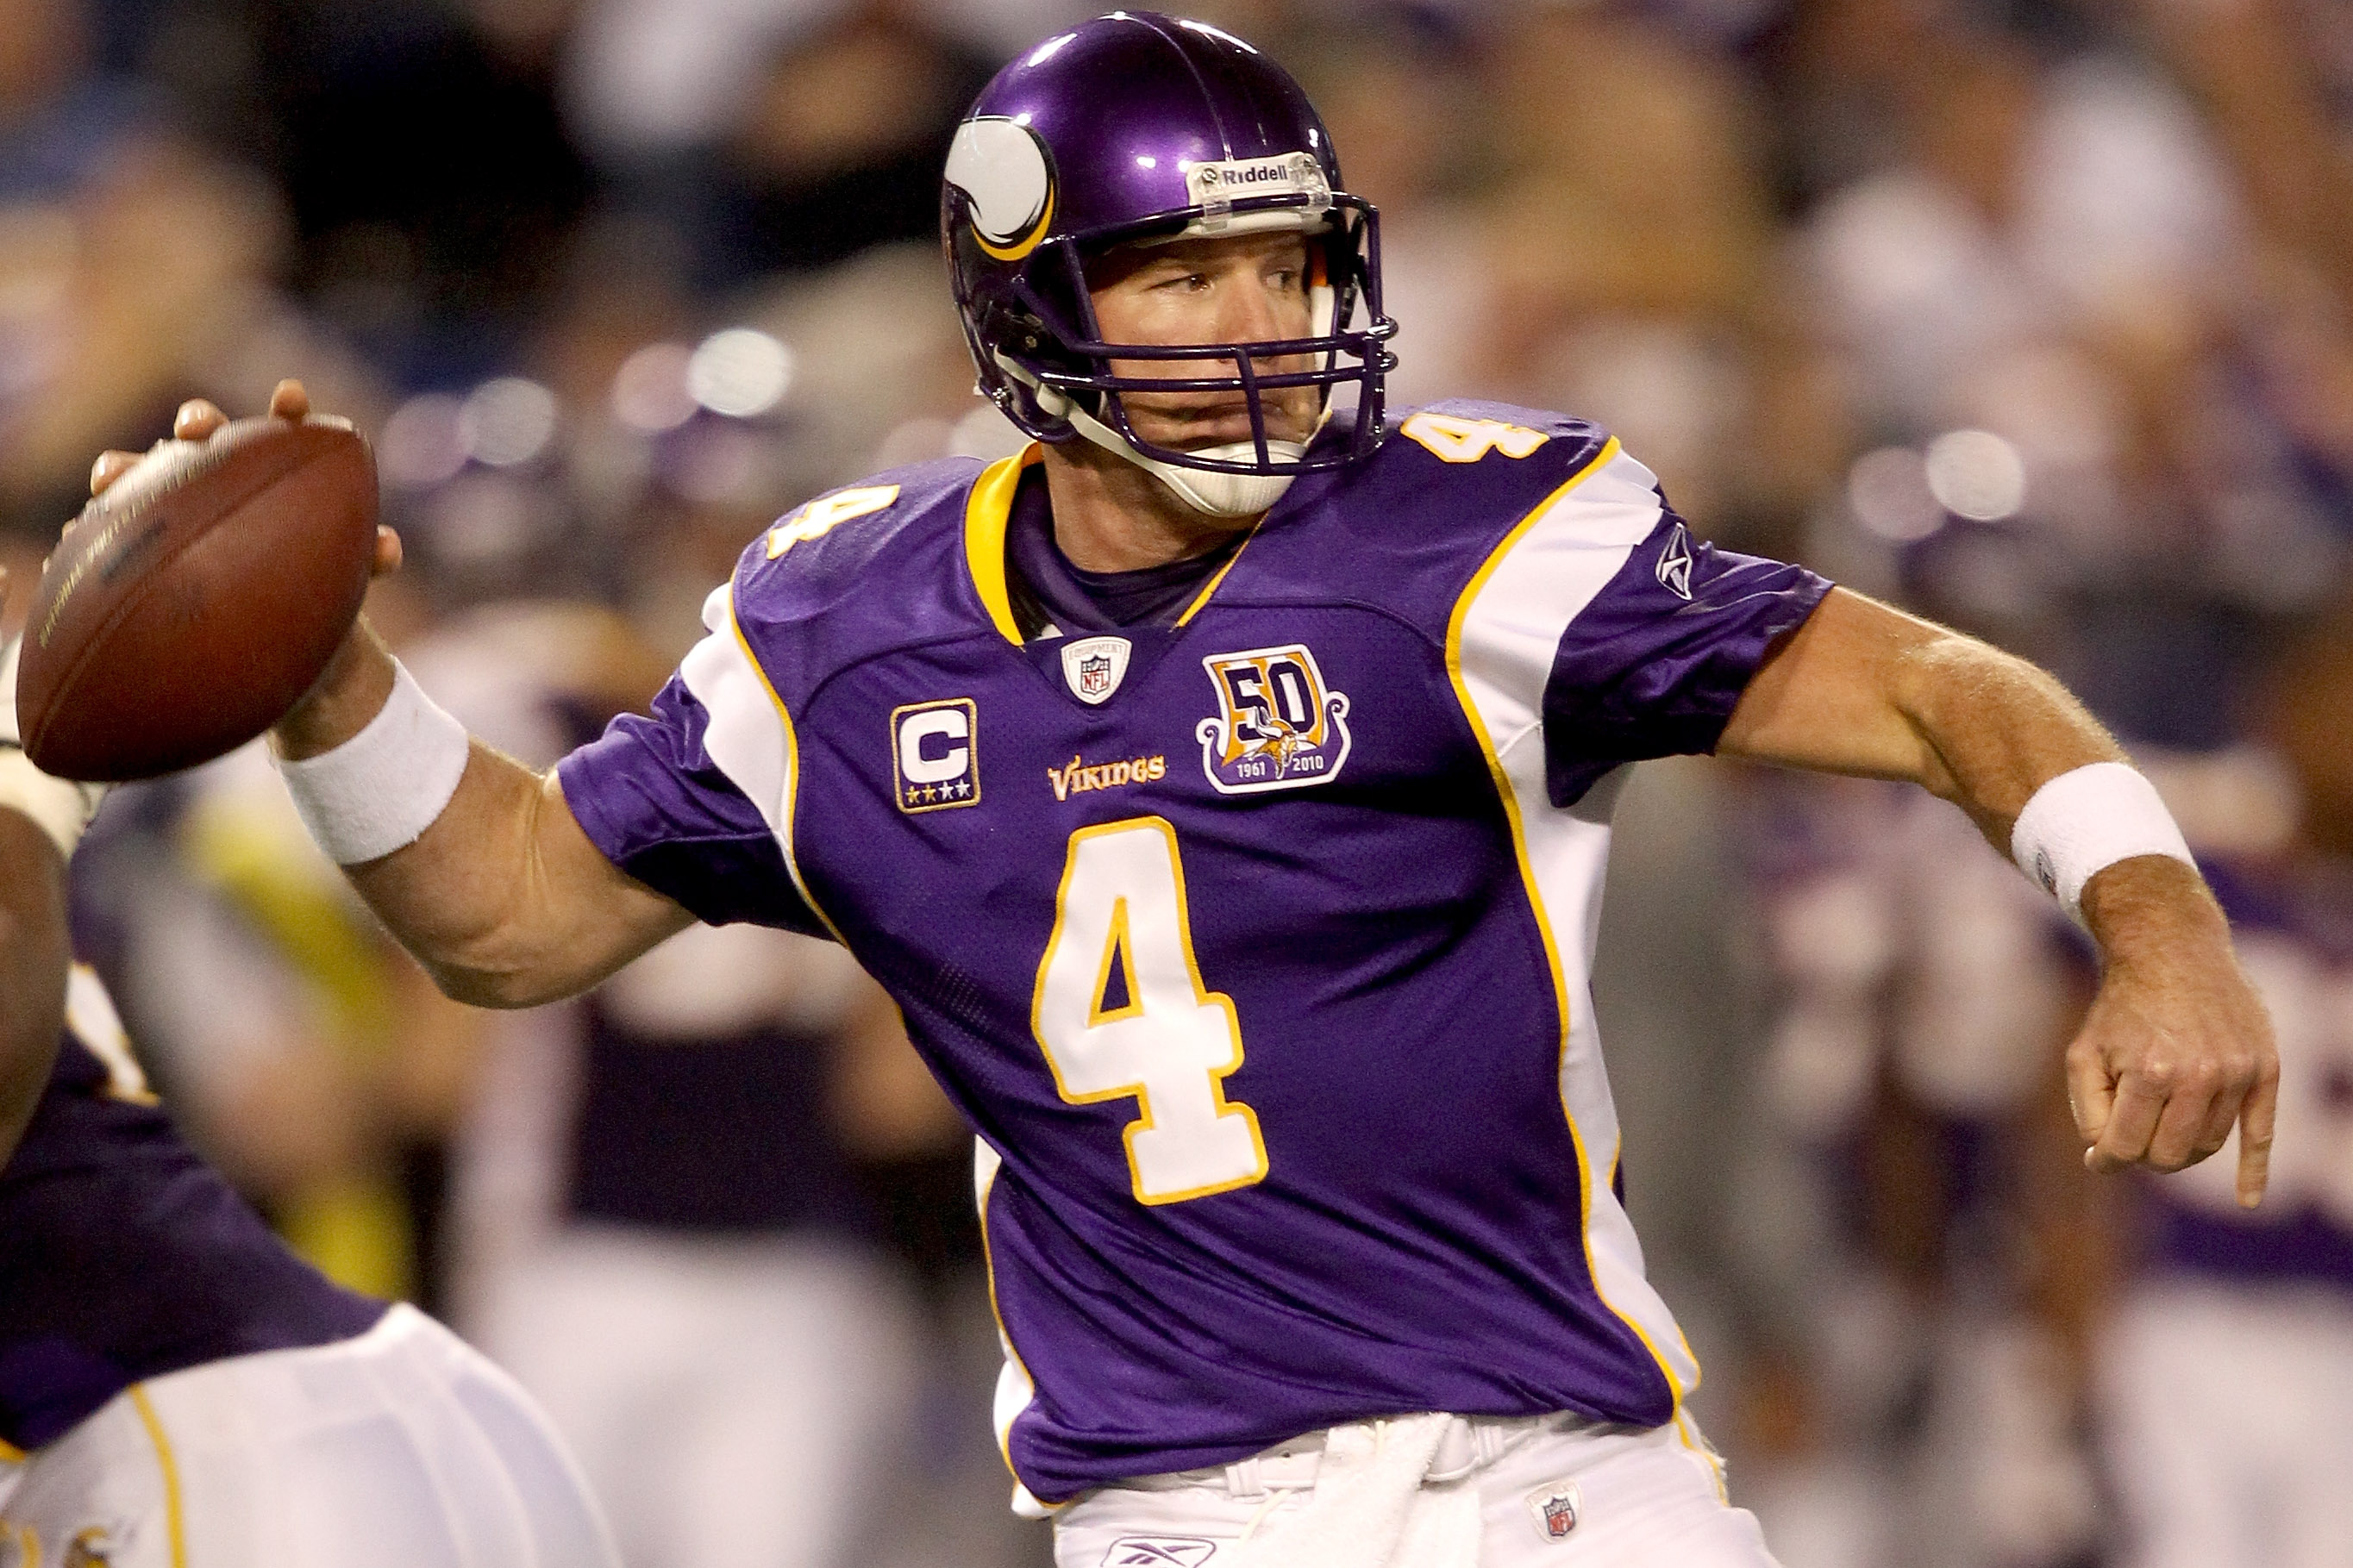 MINNEAPOLIS - NOVEMBER 21:  Quarterback Brett Favre #4 of the Minnesota Vikings looks for an open receiver while playing the Green Bay Packers at the Hubert H. Humphrey Metrodome on November 21, 2010 in Minneapolis, Minnesota.  (Photo by Matthew Stockman/